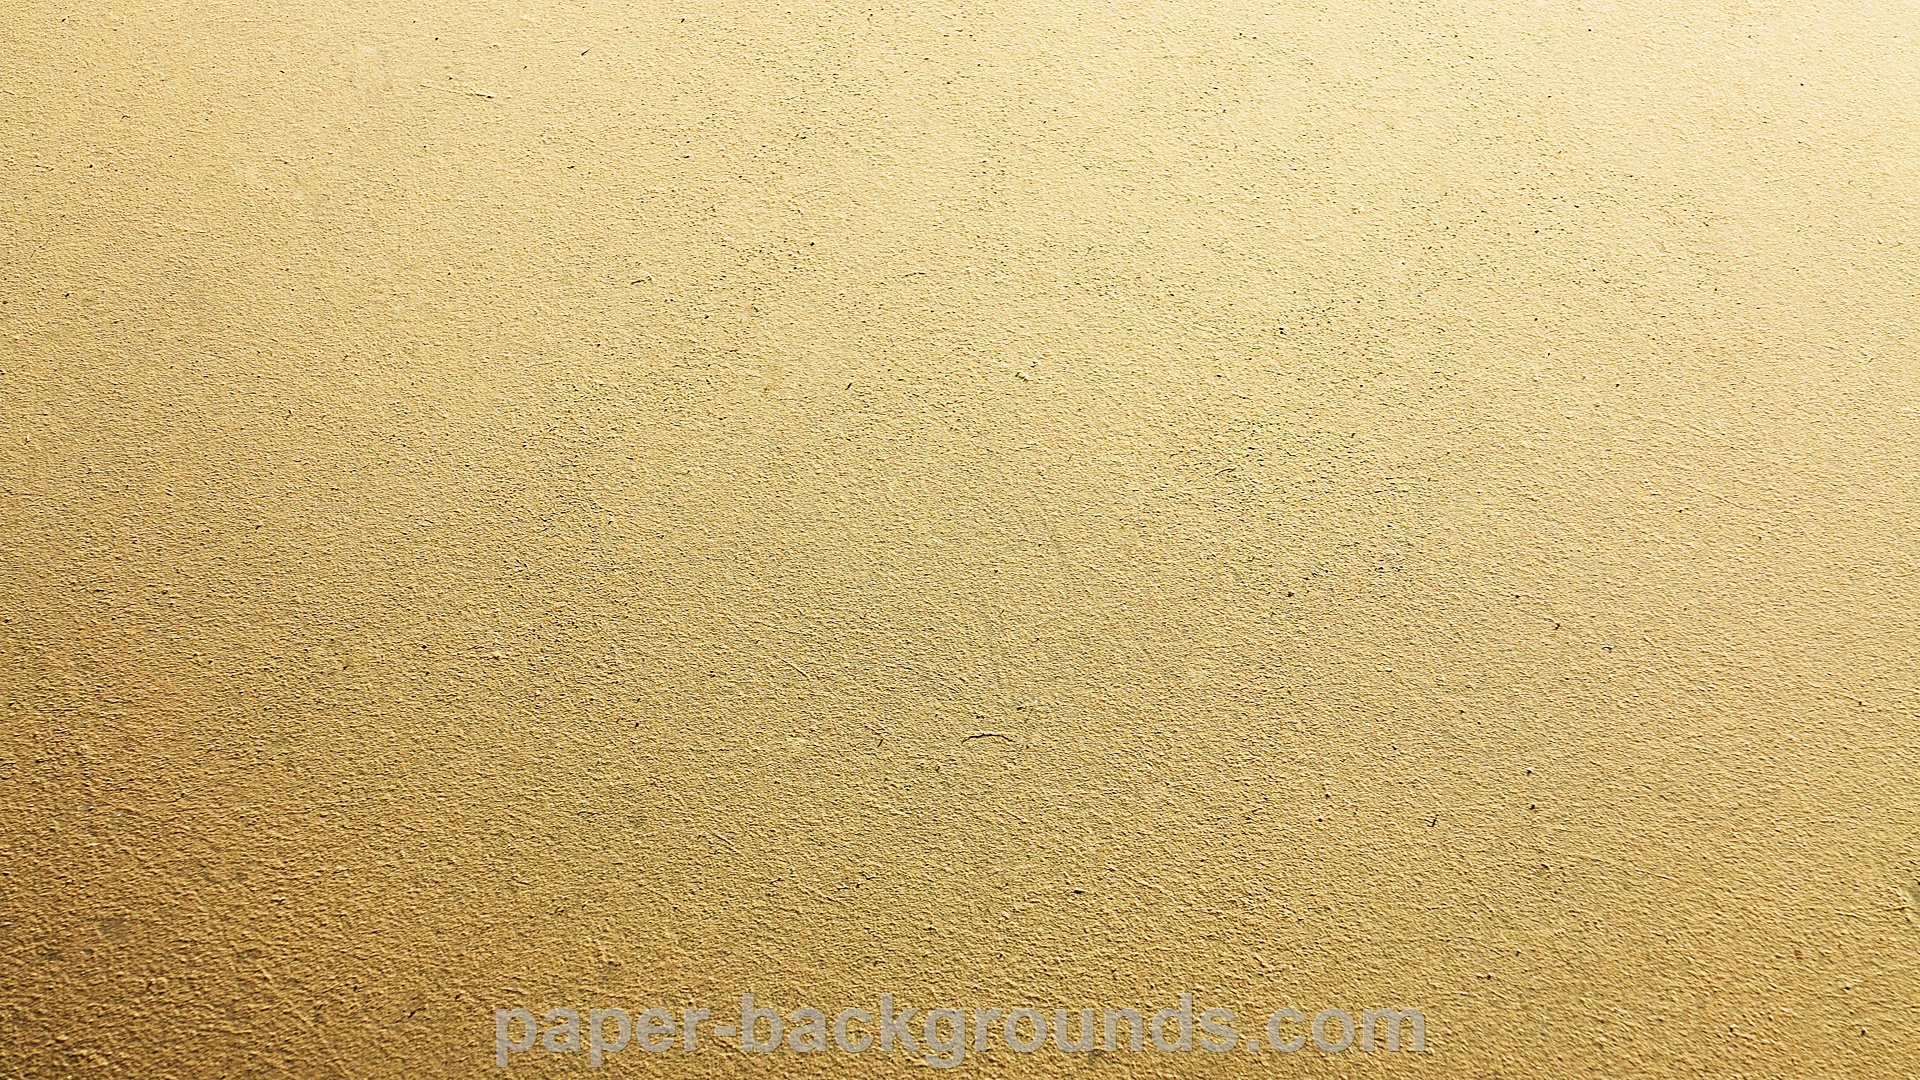 Paper Backgrounds   gold-sand-dust-background-wallpaper-hd